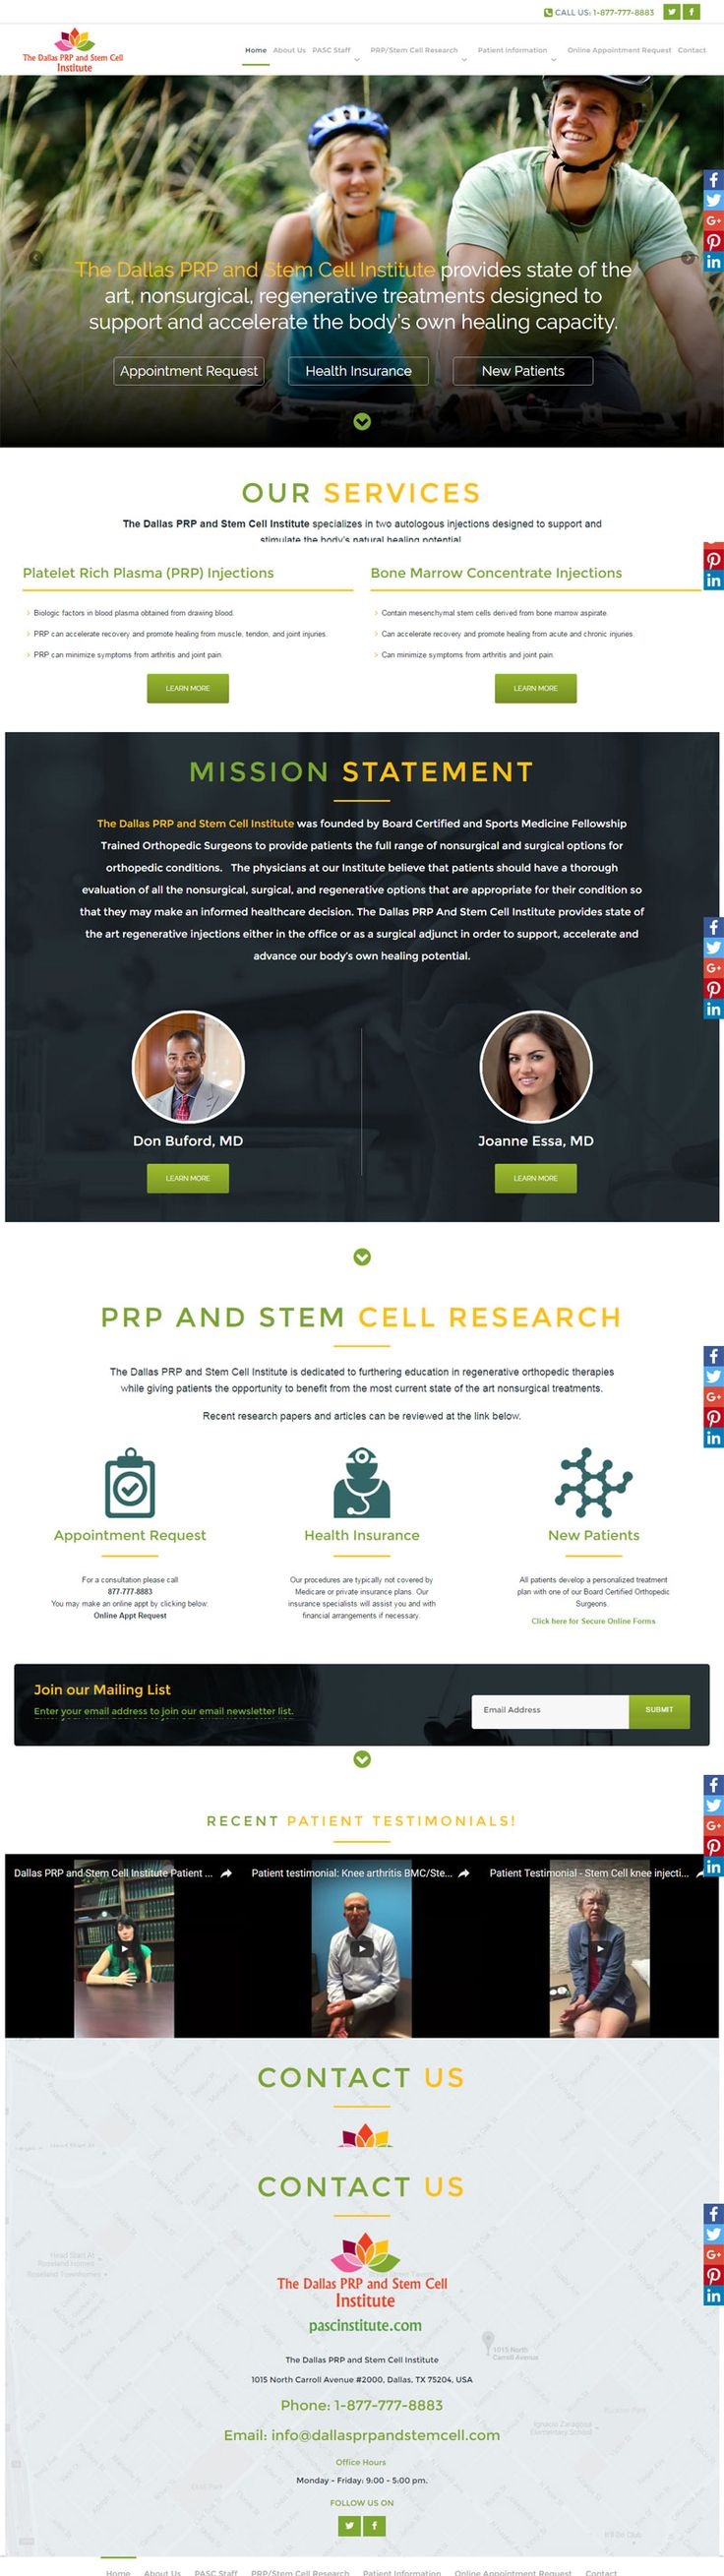 Beautiful new website for Dallas PRP and